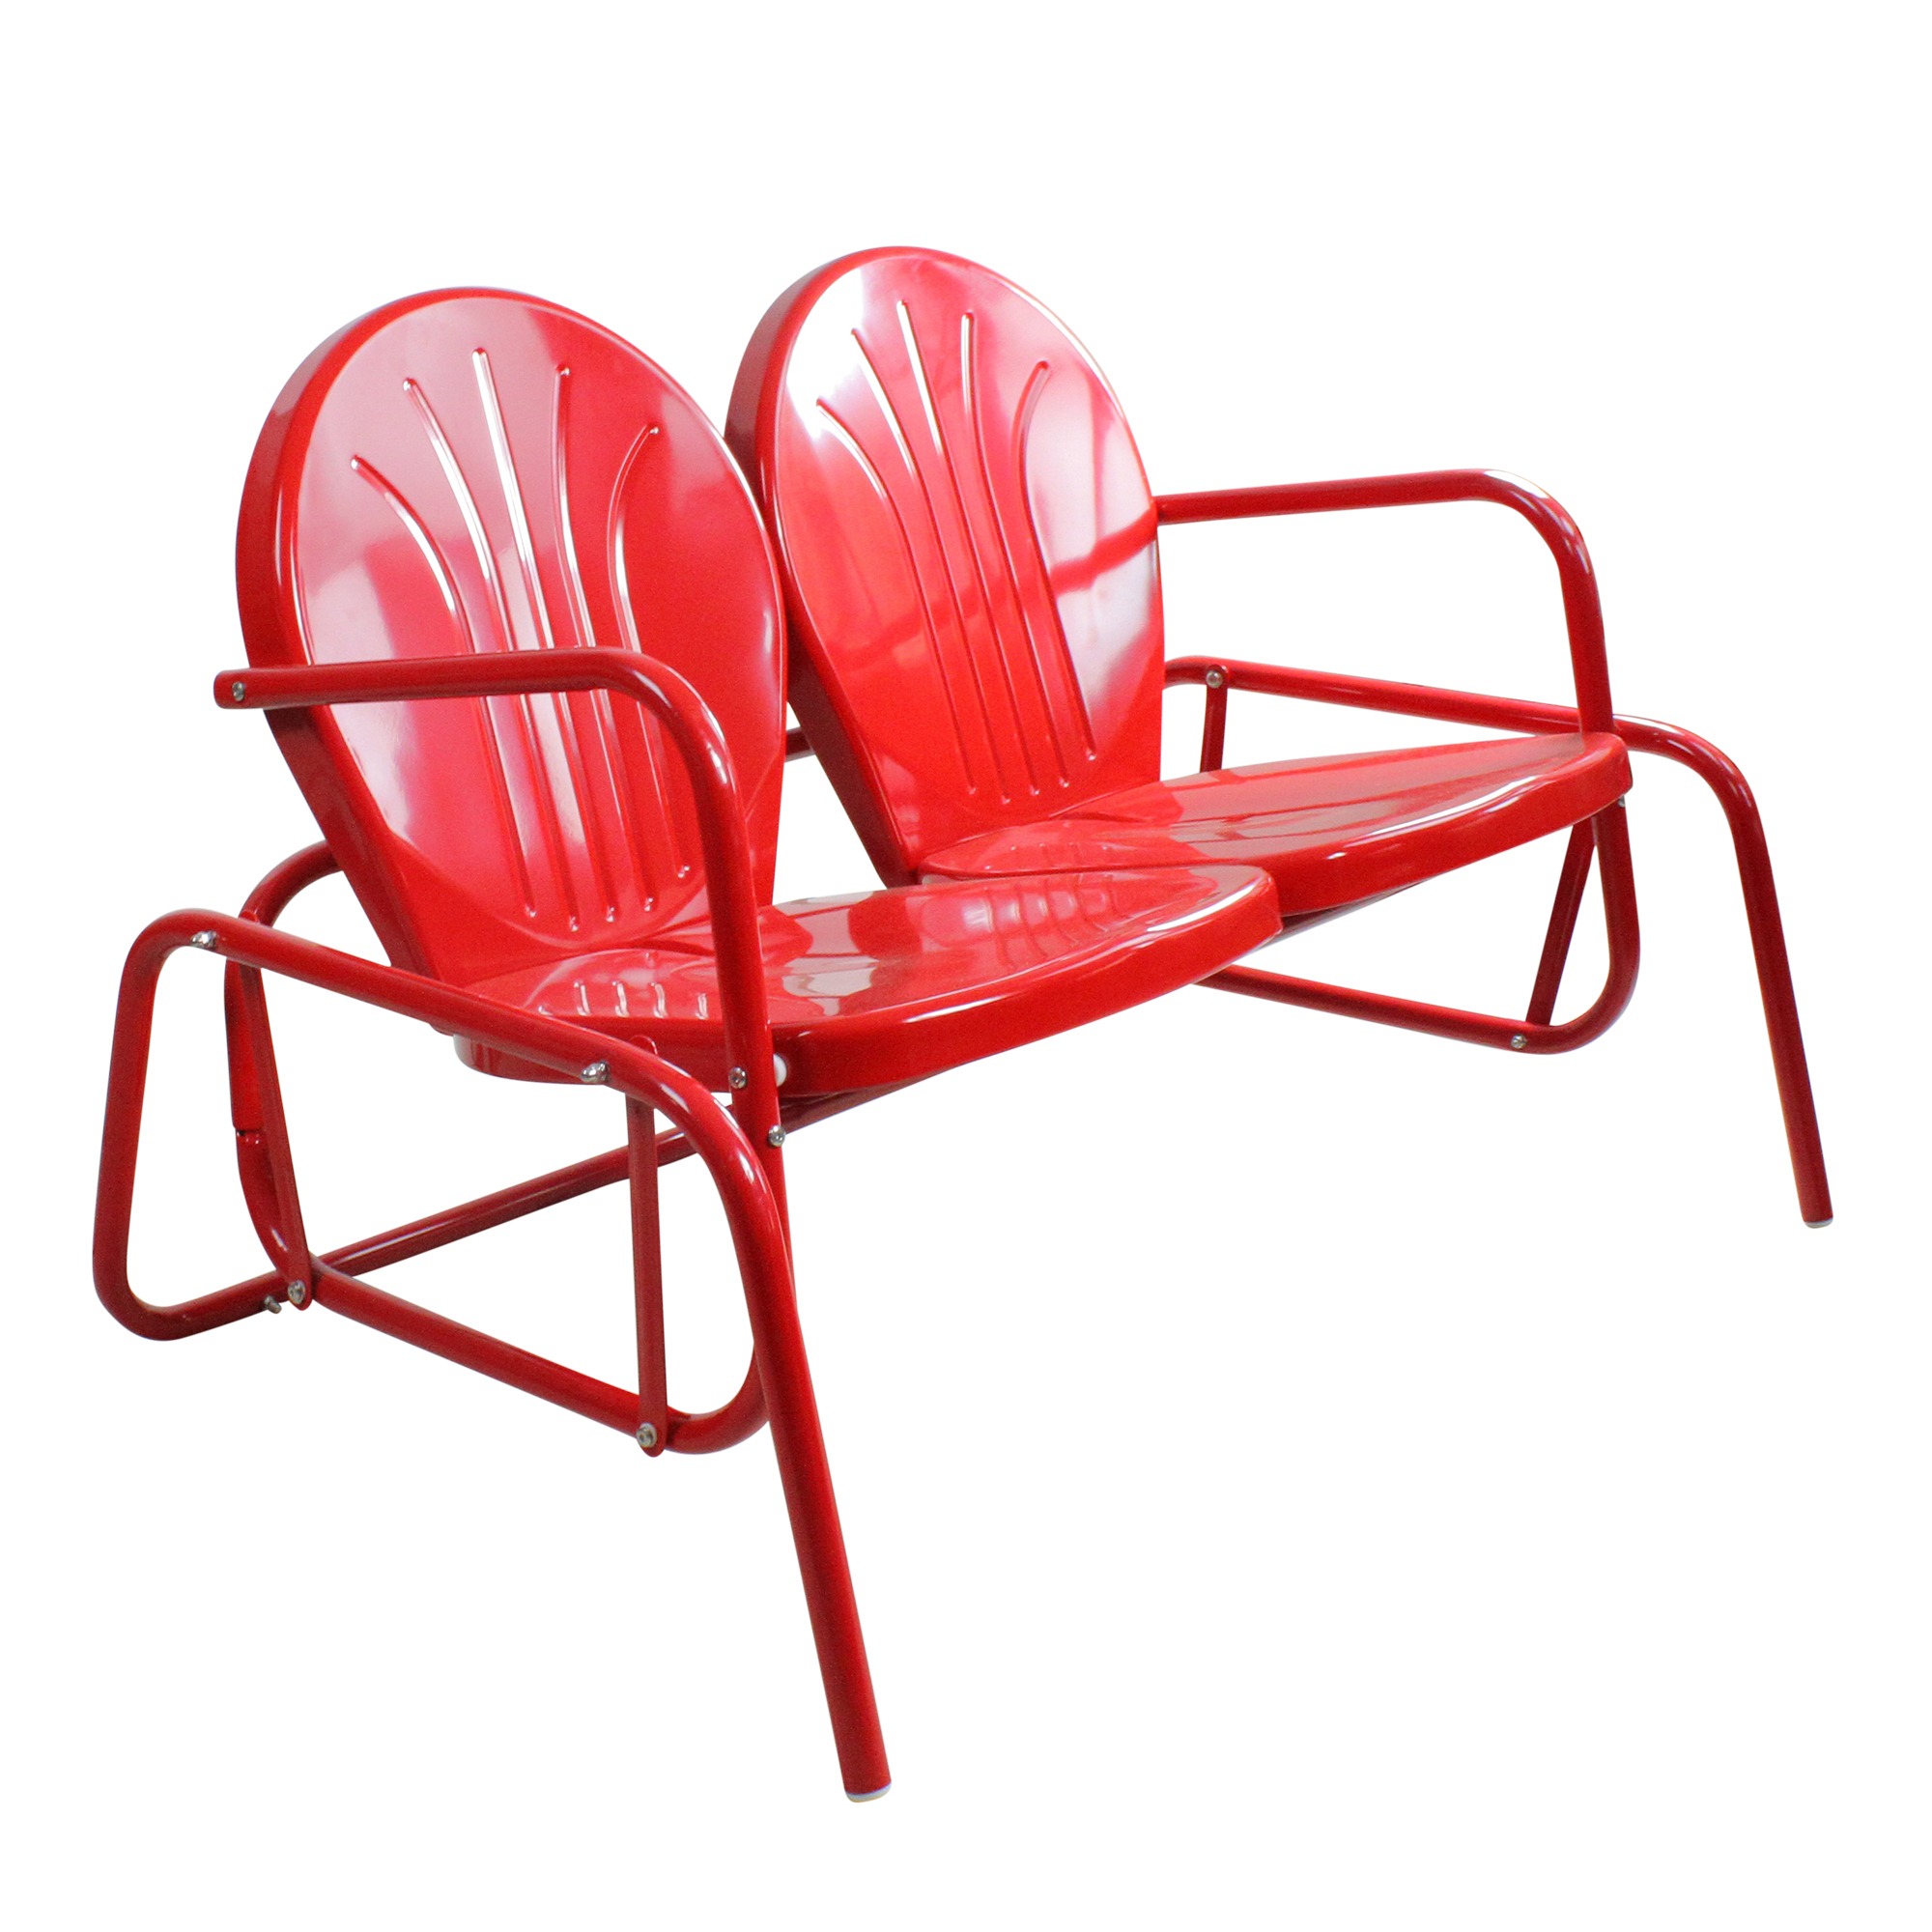 Details About Northlight Vibrant Red Retro Metal Tulip Outdoor Double Glider With Outdoor Retro Metal Double Glider Benches (View 22 of 25)